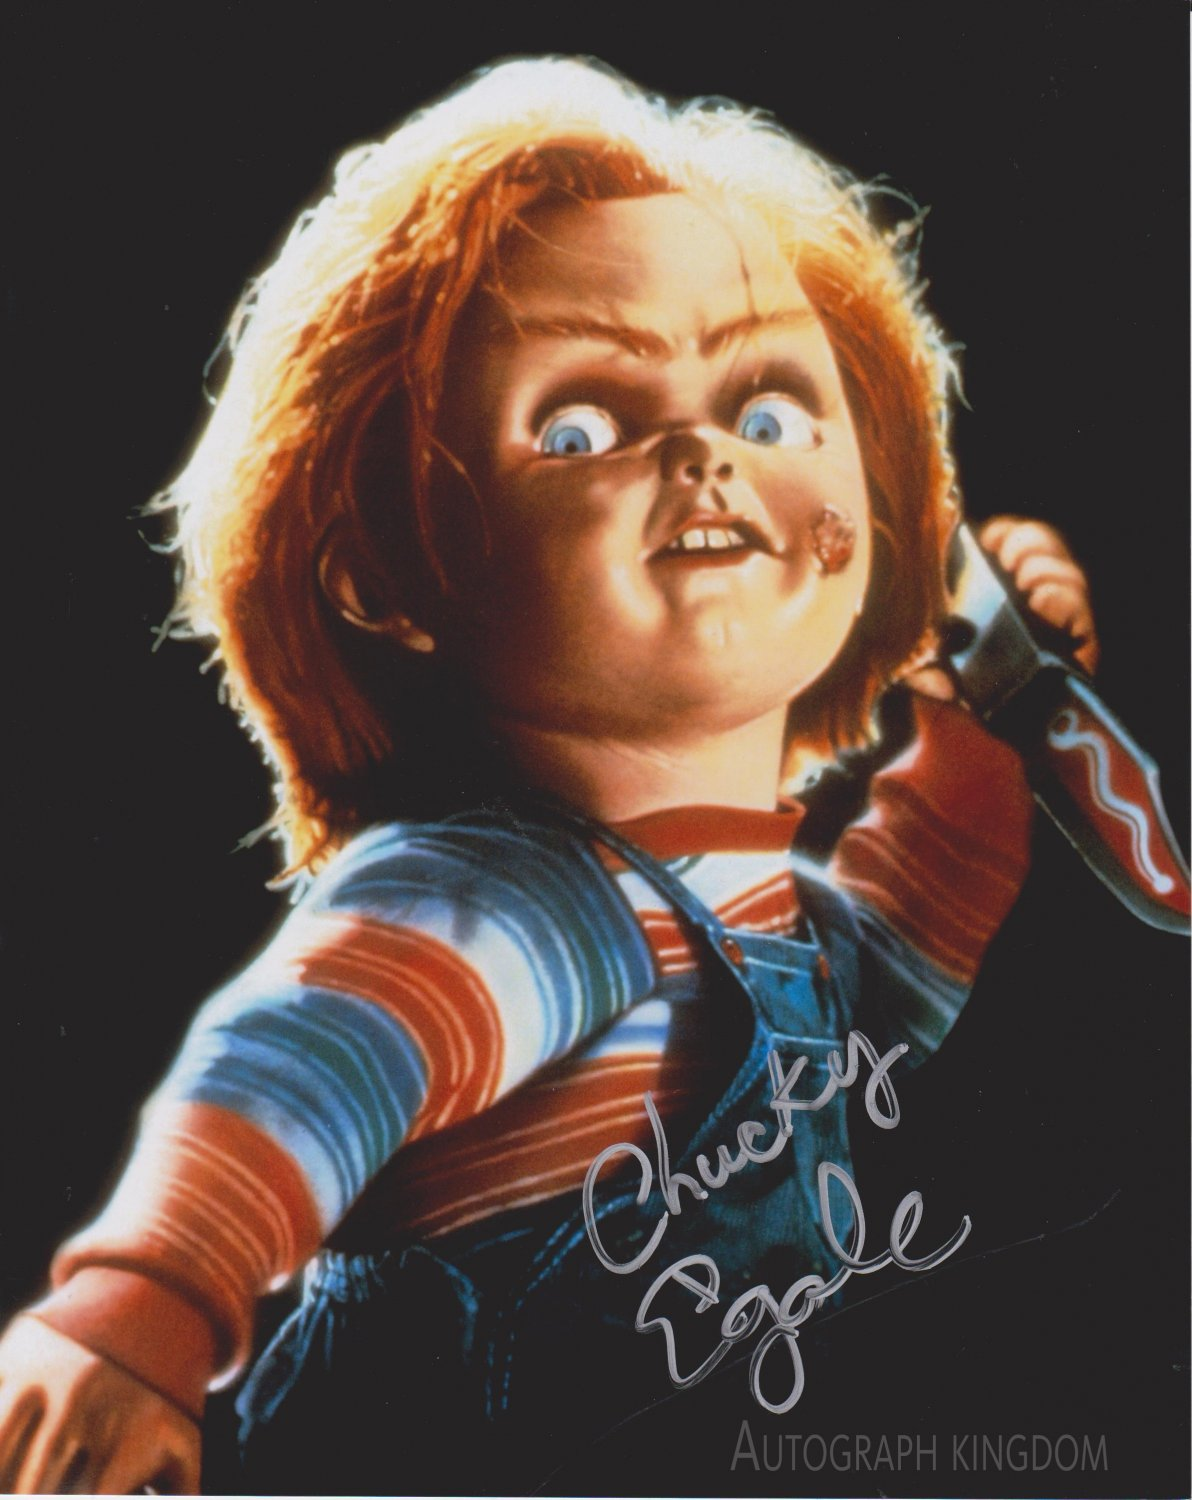 """Ed Gale (Child's Play / Chucky) 8 X 10"""" Autographed signed Photo (Reprint 2074) Great Gift Idea!"""